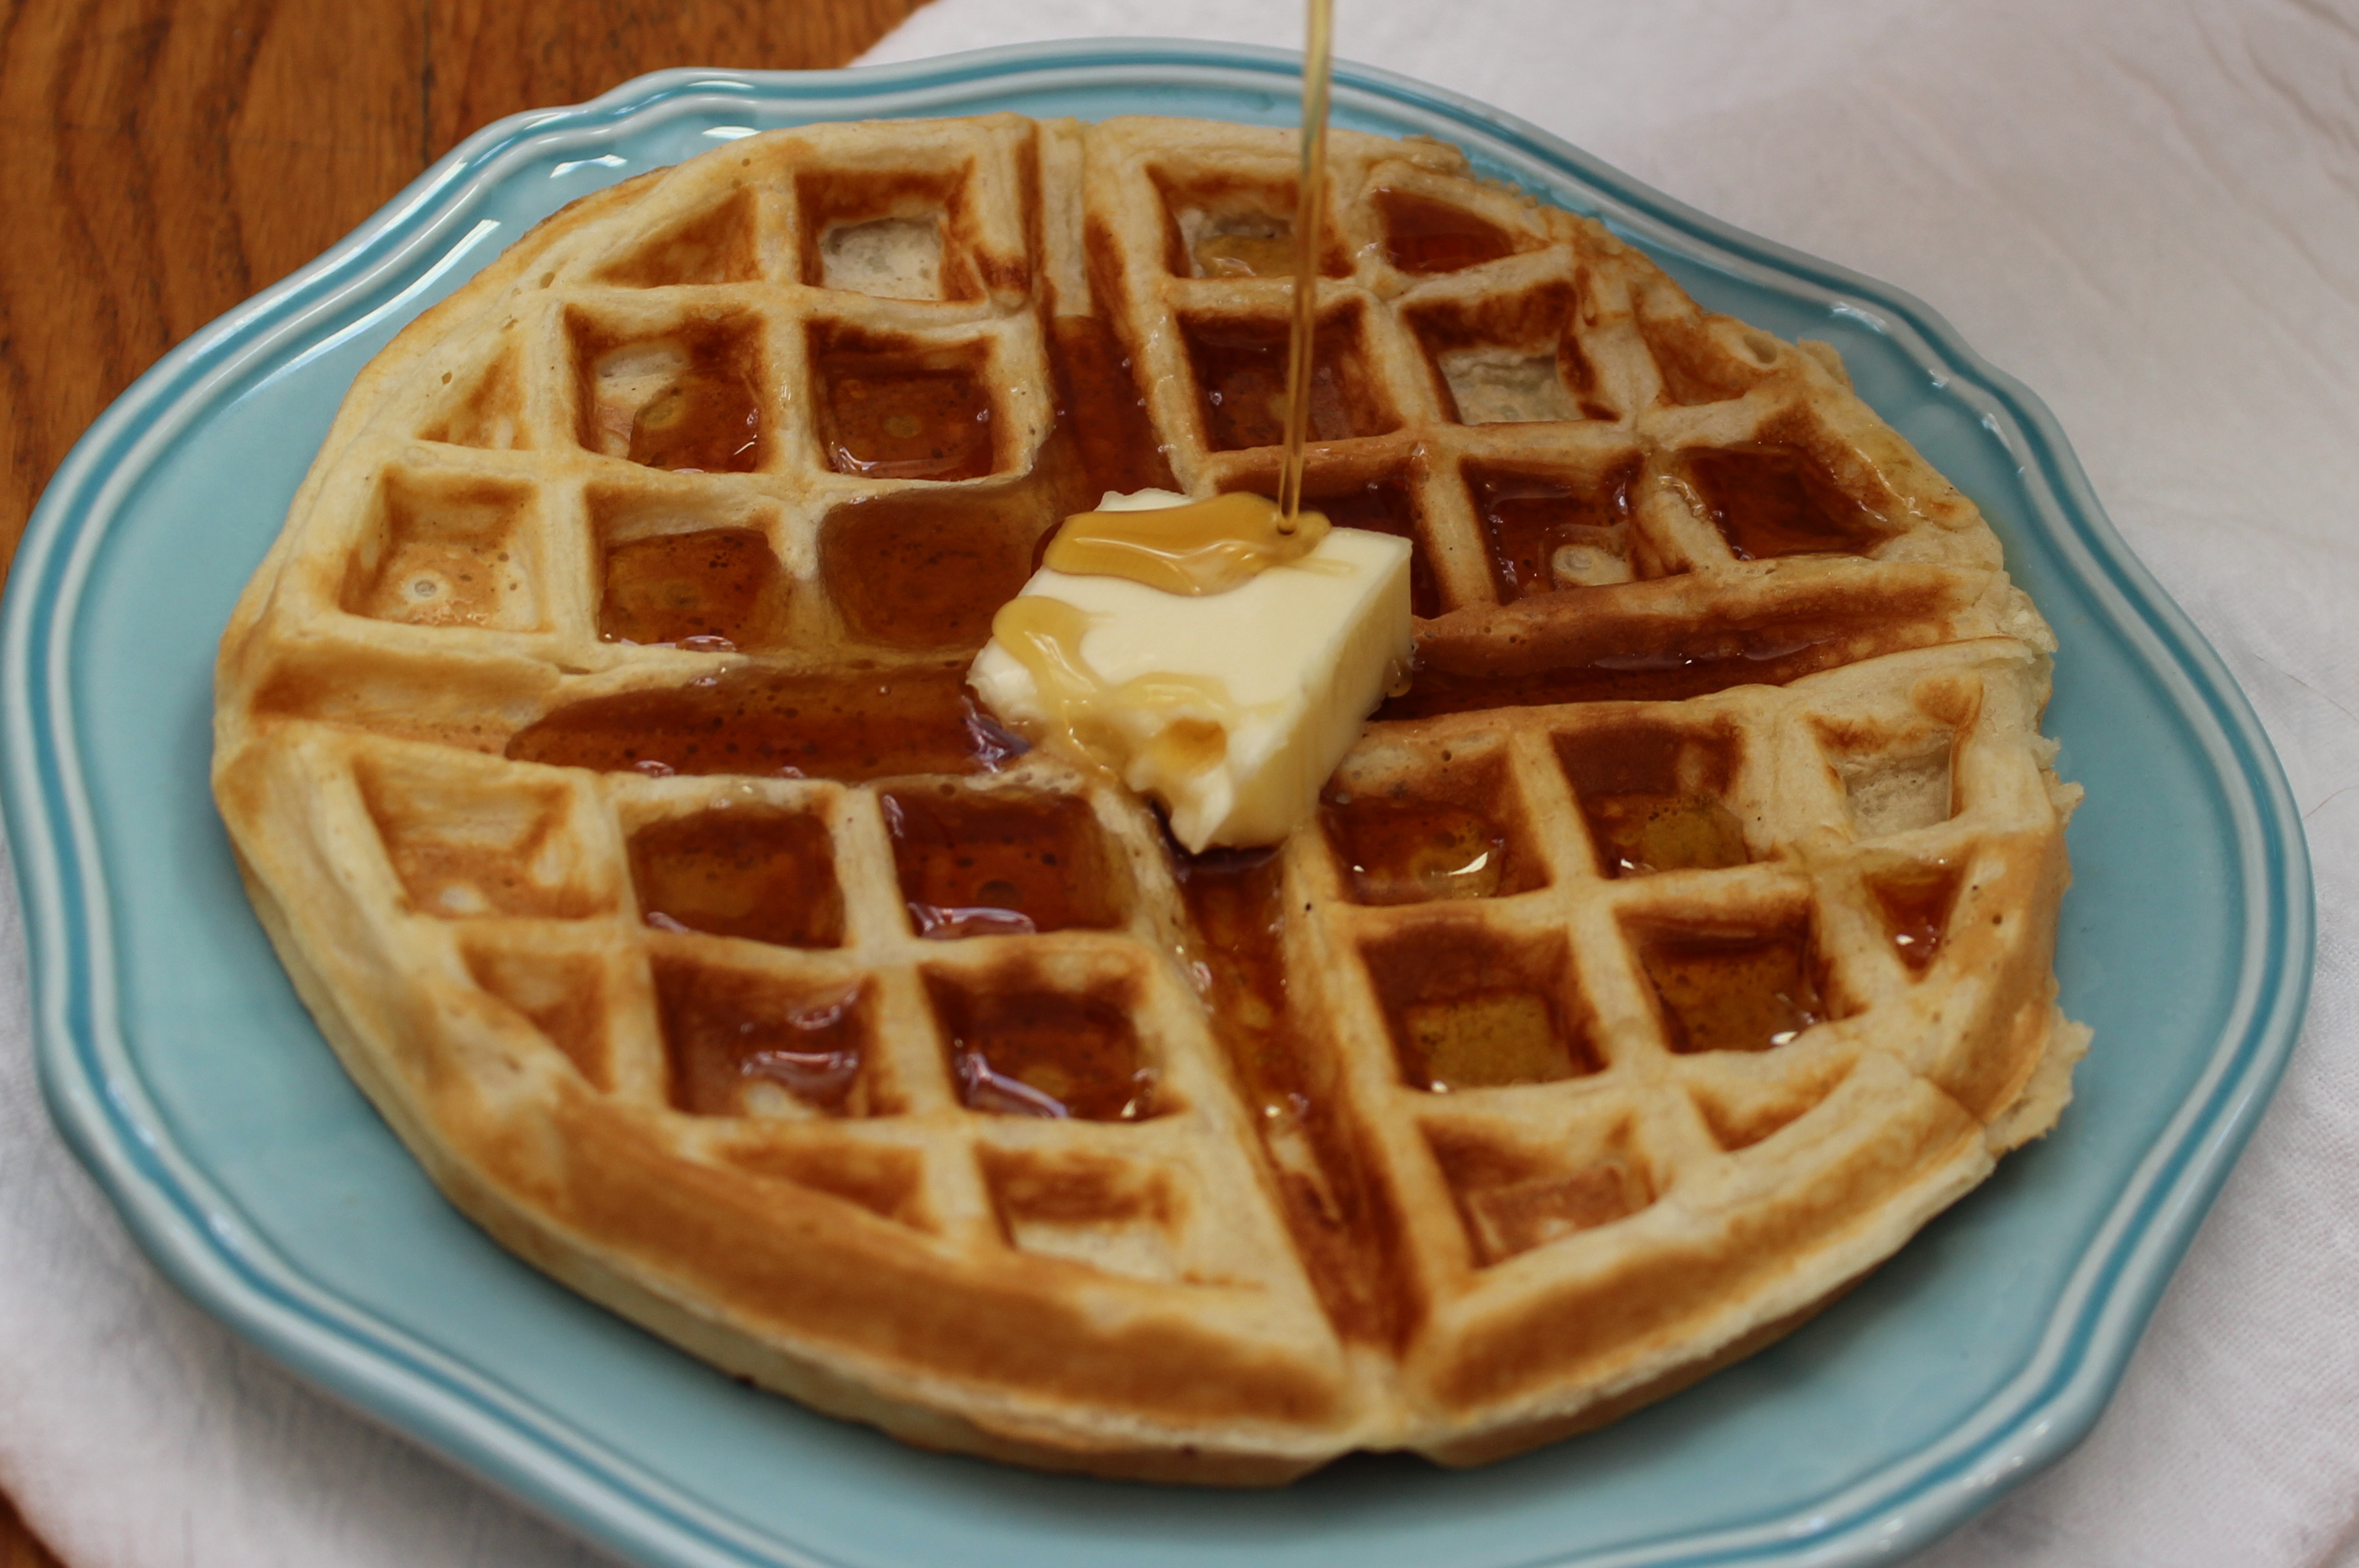 how to cook frozen waffles